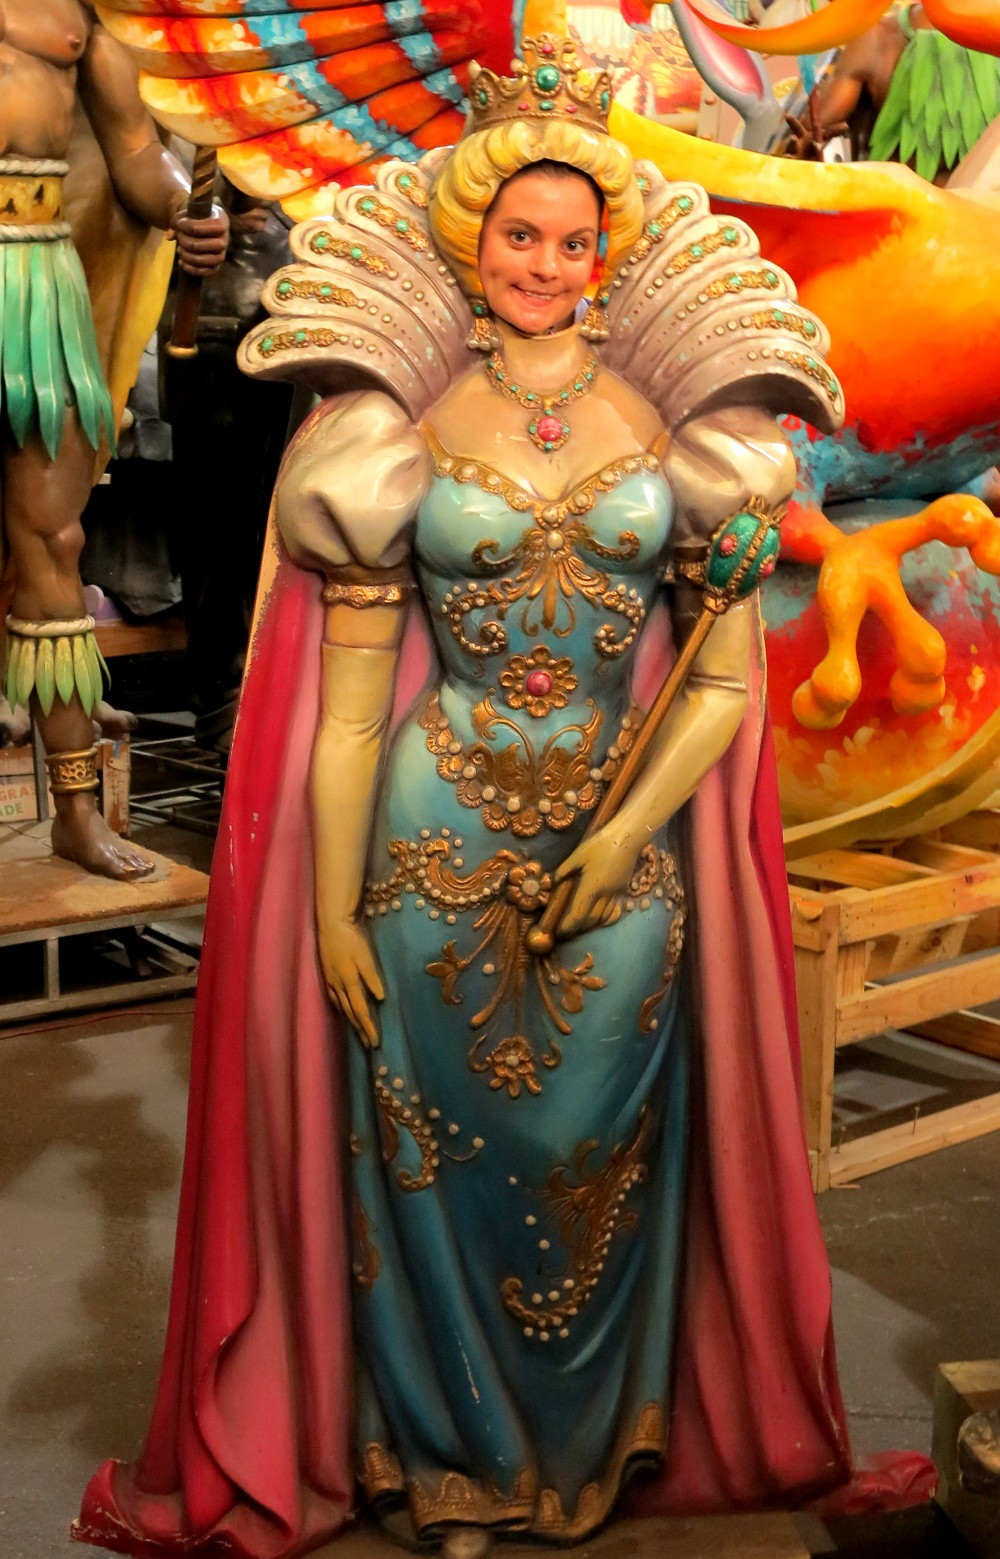 Being a princess at the Mardi Gras museum in New Orleans Double-Barrelled Travel